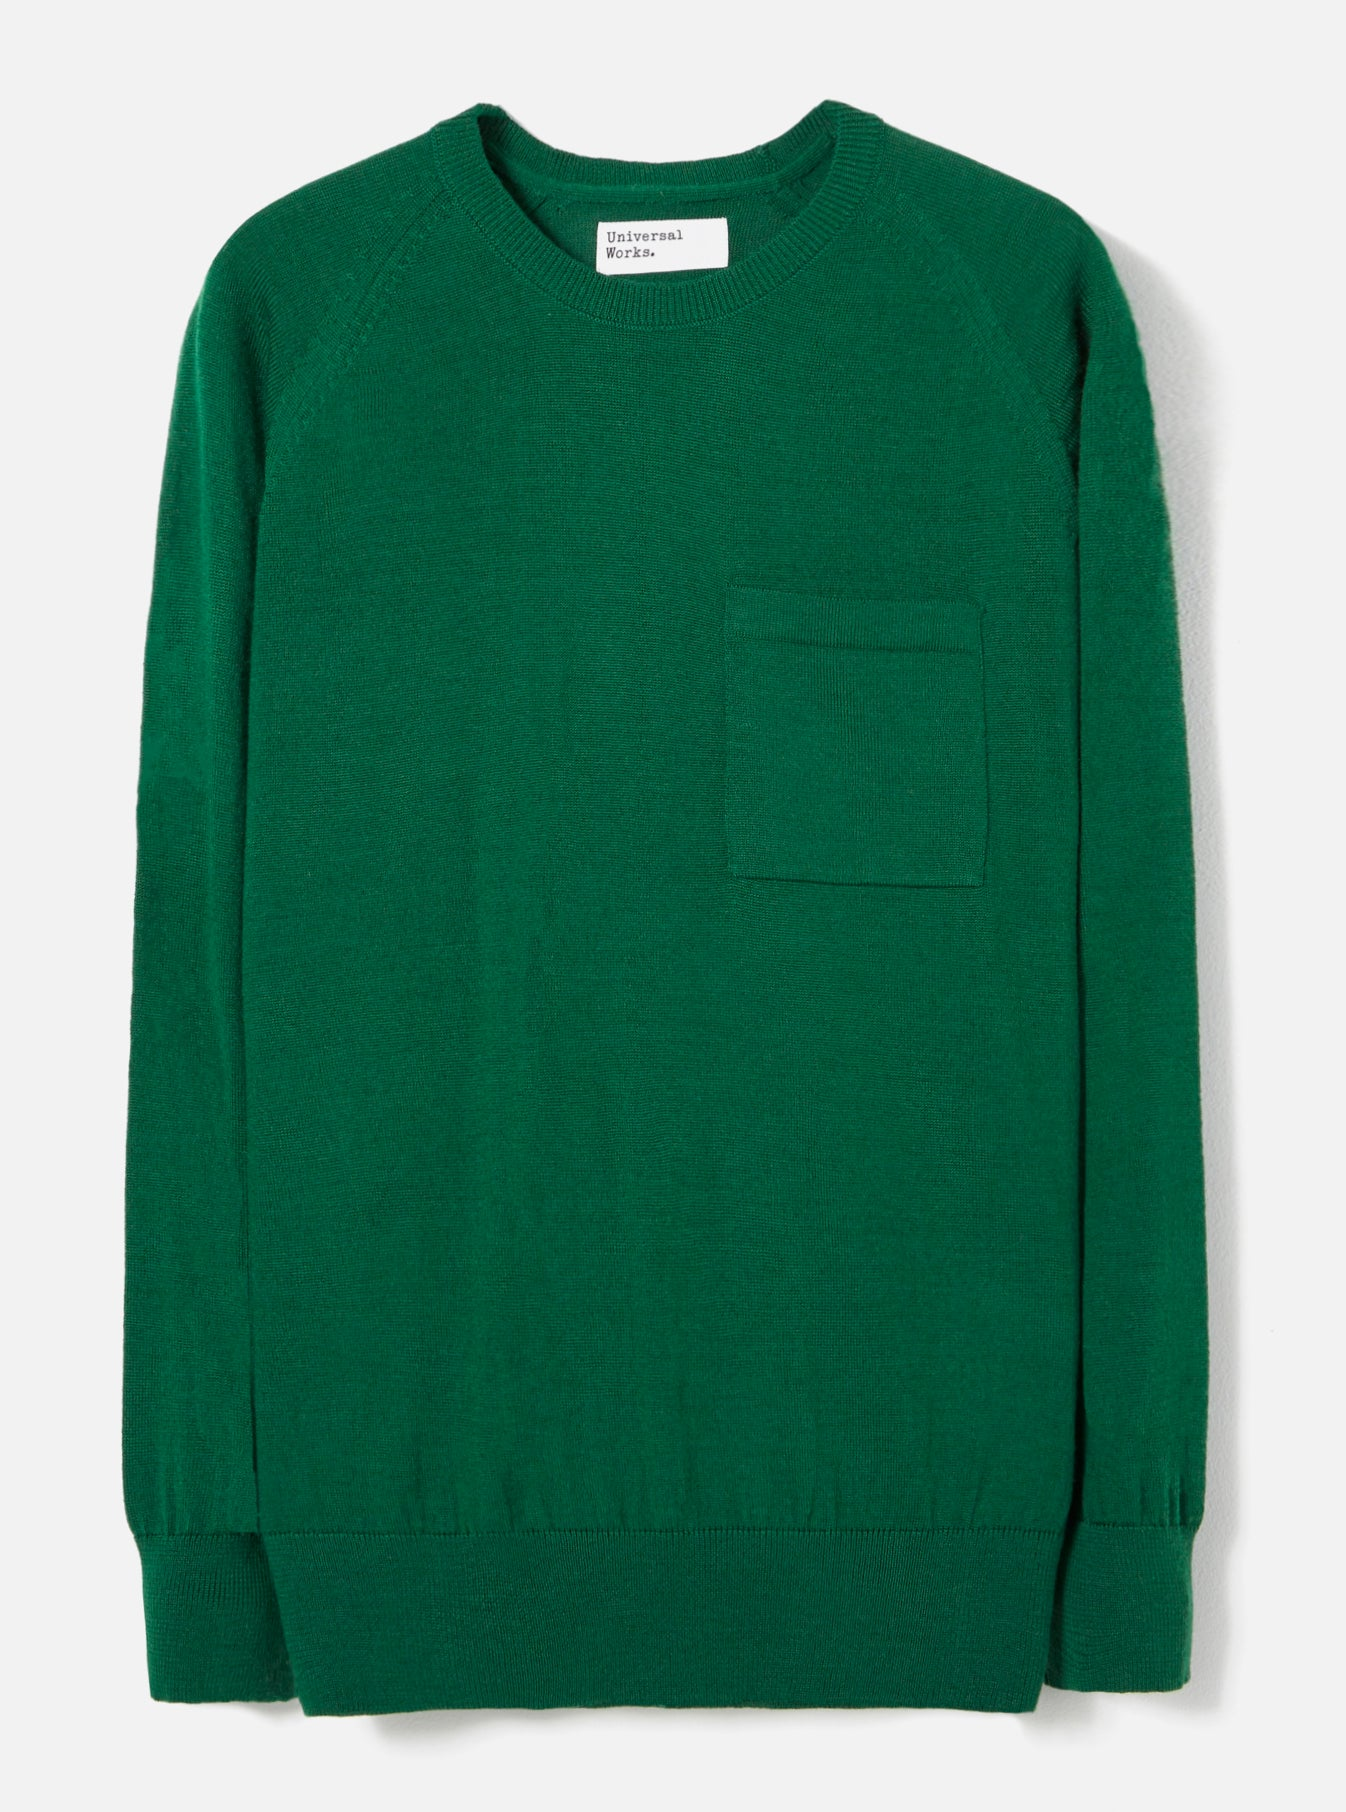 Universal Works Loose Pocket Crew in Green Merino Knit